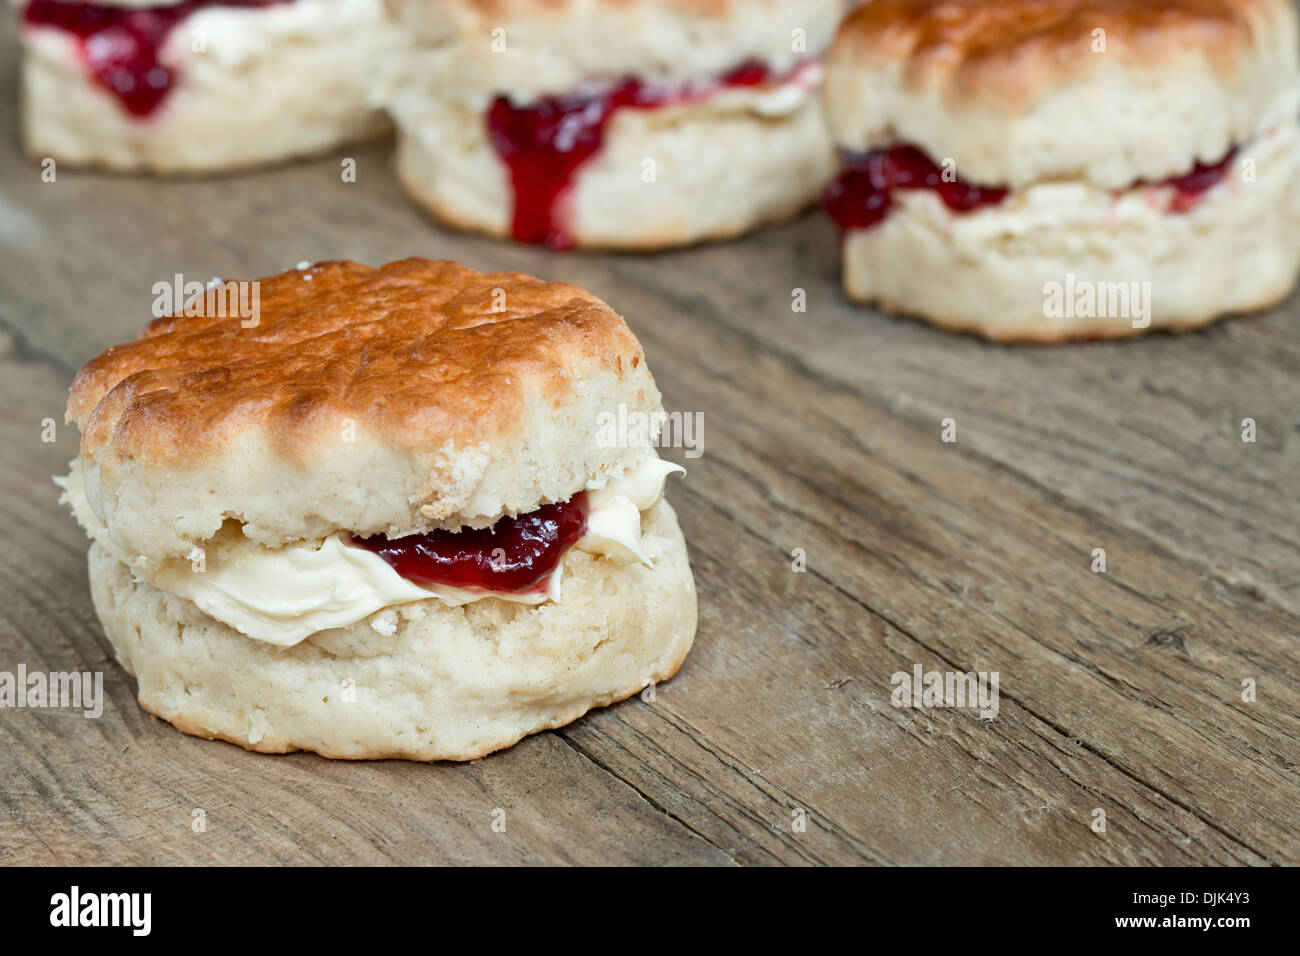 Cornish Cream Tea of scones filled with clotted cream and strawberry jam often served with hot beverages - Stock Image